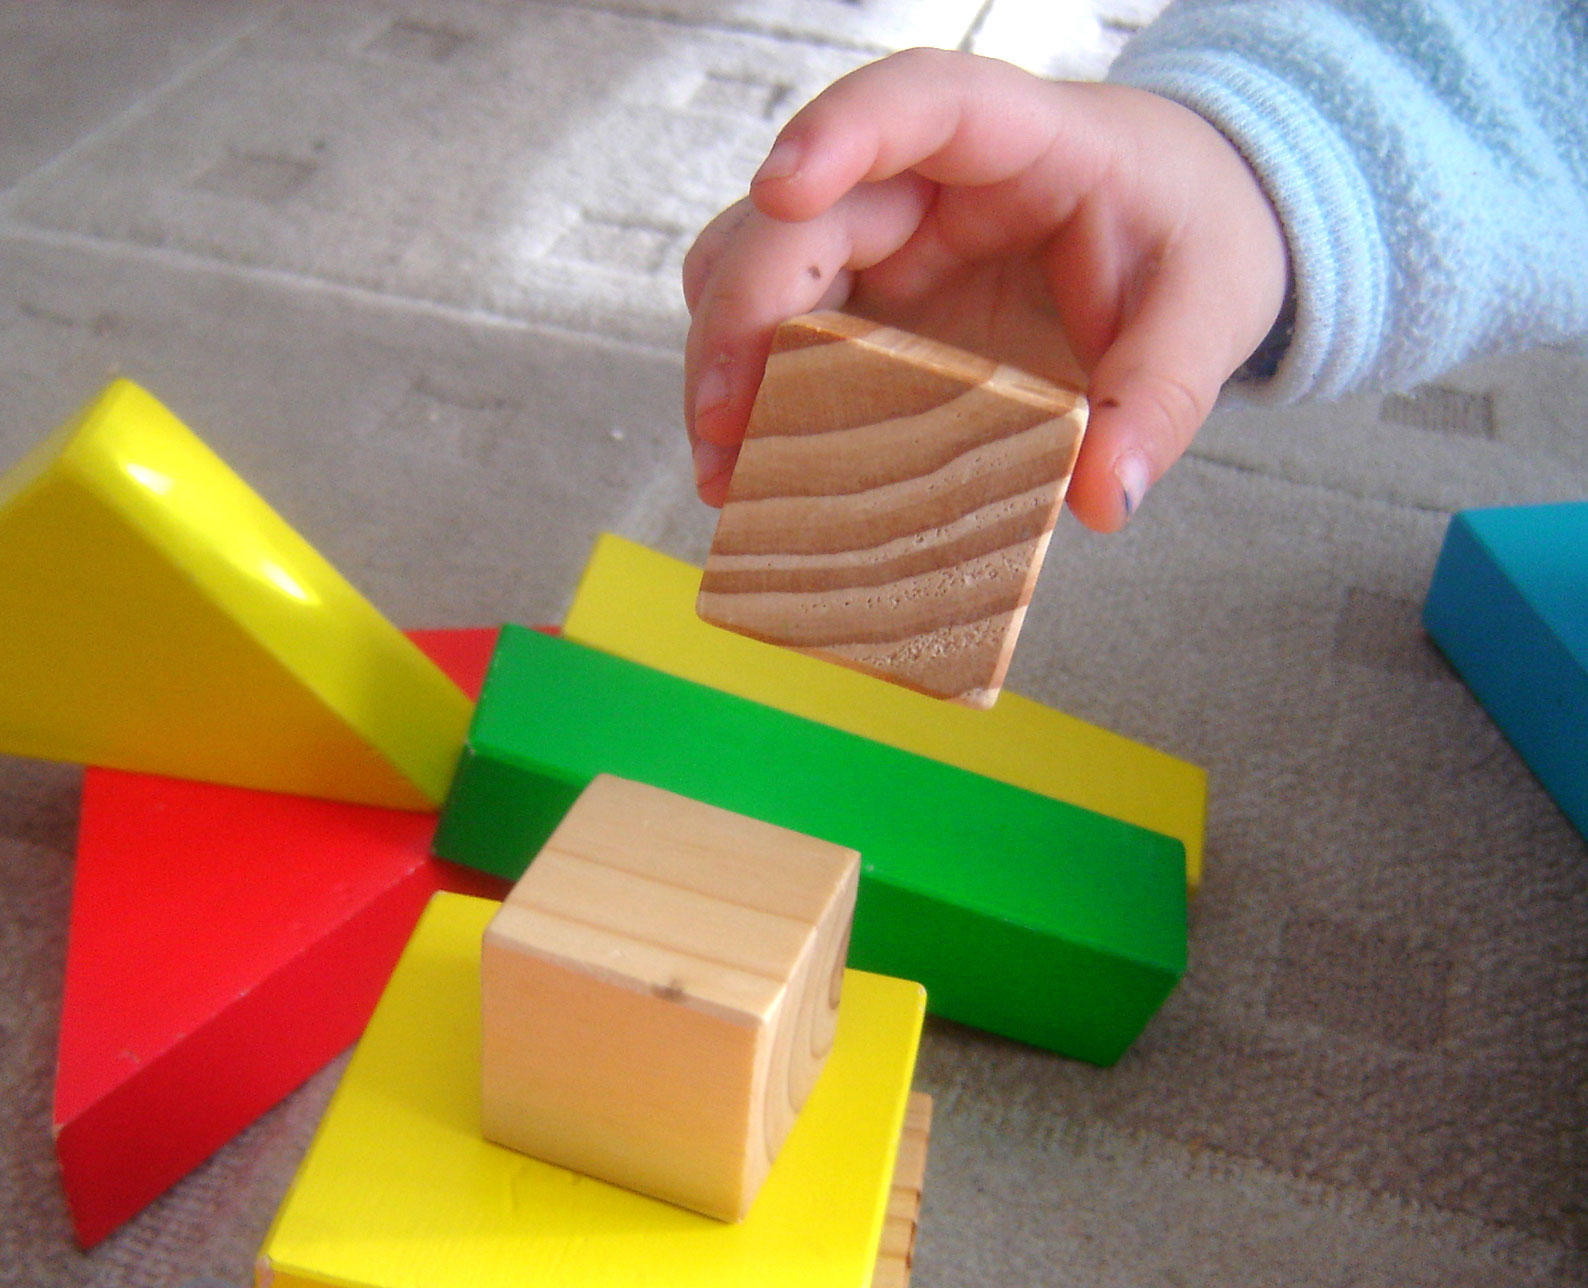 baby-with-blocks